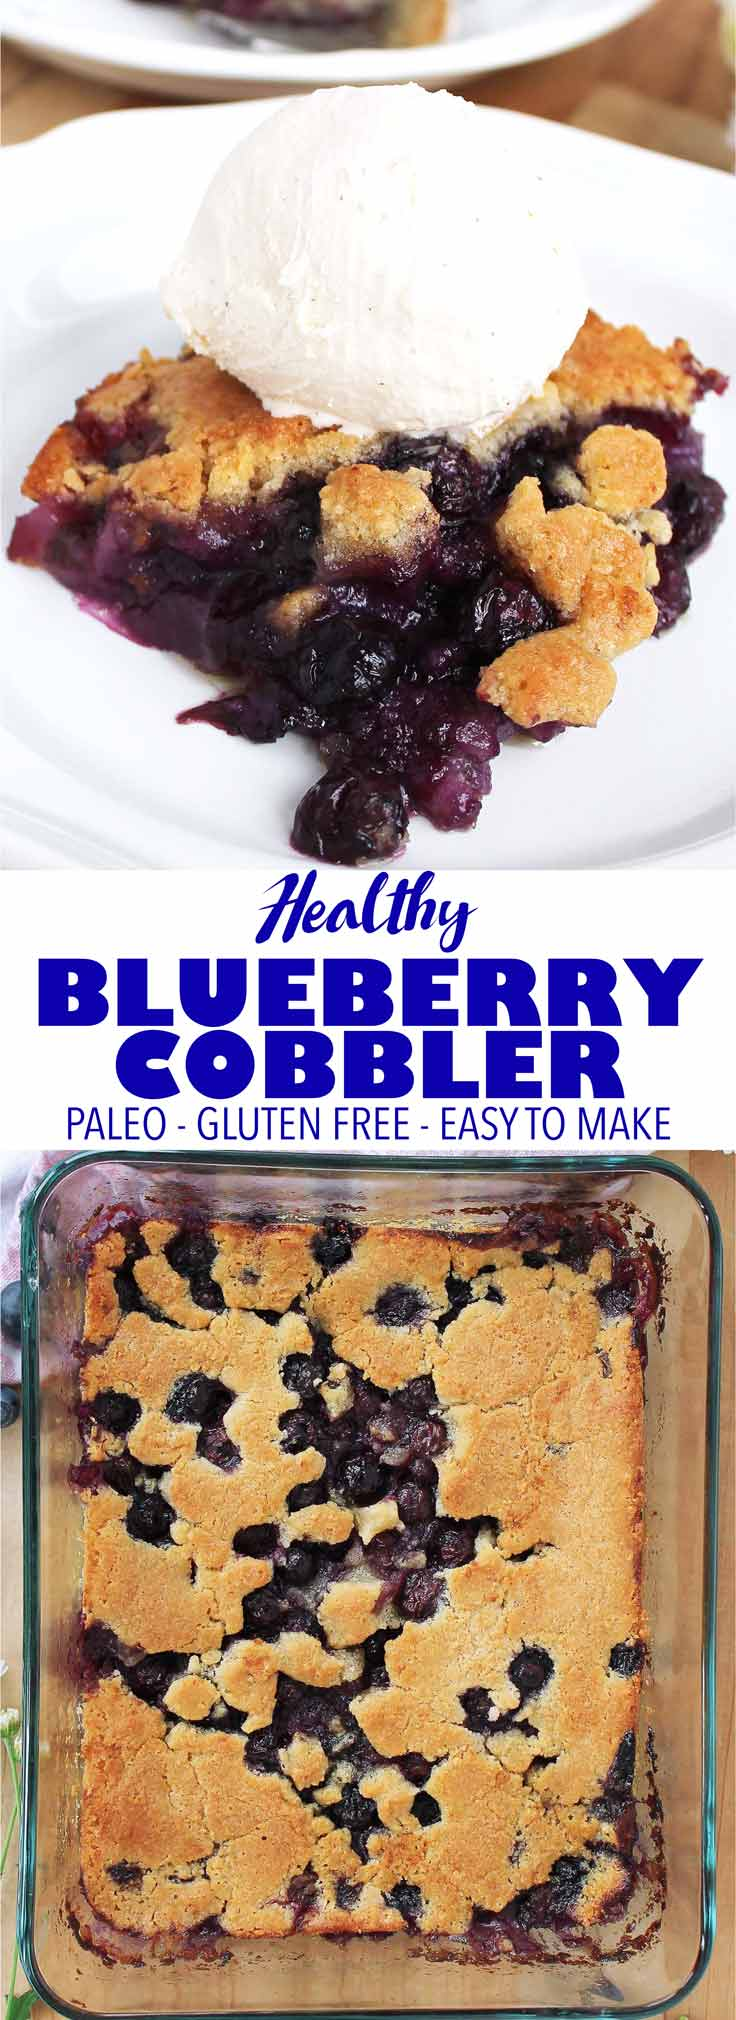 The delicious southern classic made healthy! This blueberry cobbler is simple to make, paleo, gluten free, and has no refined sugar!